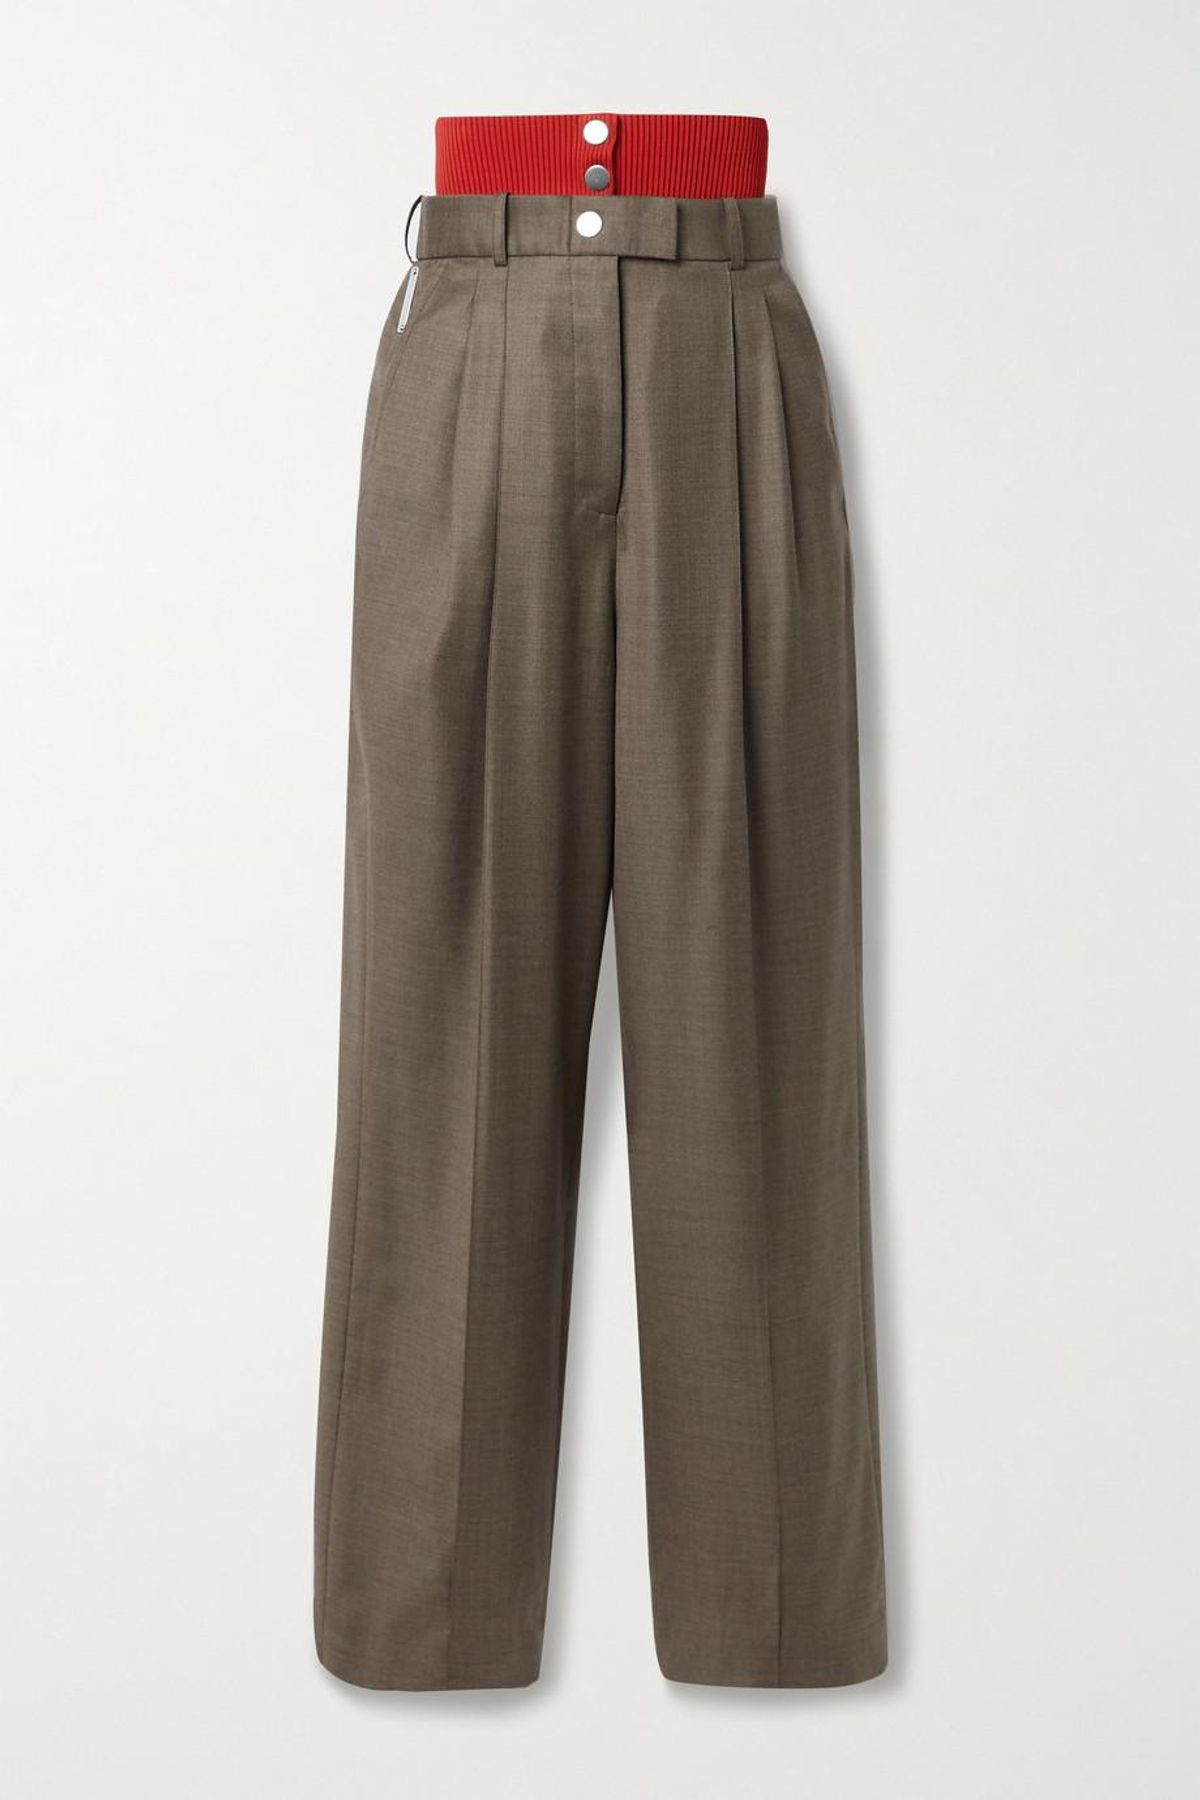 peter do ribbed knit trimmed wool straight leg pants